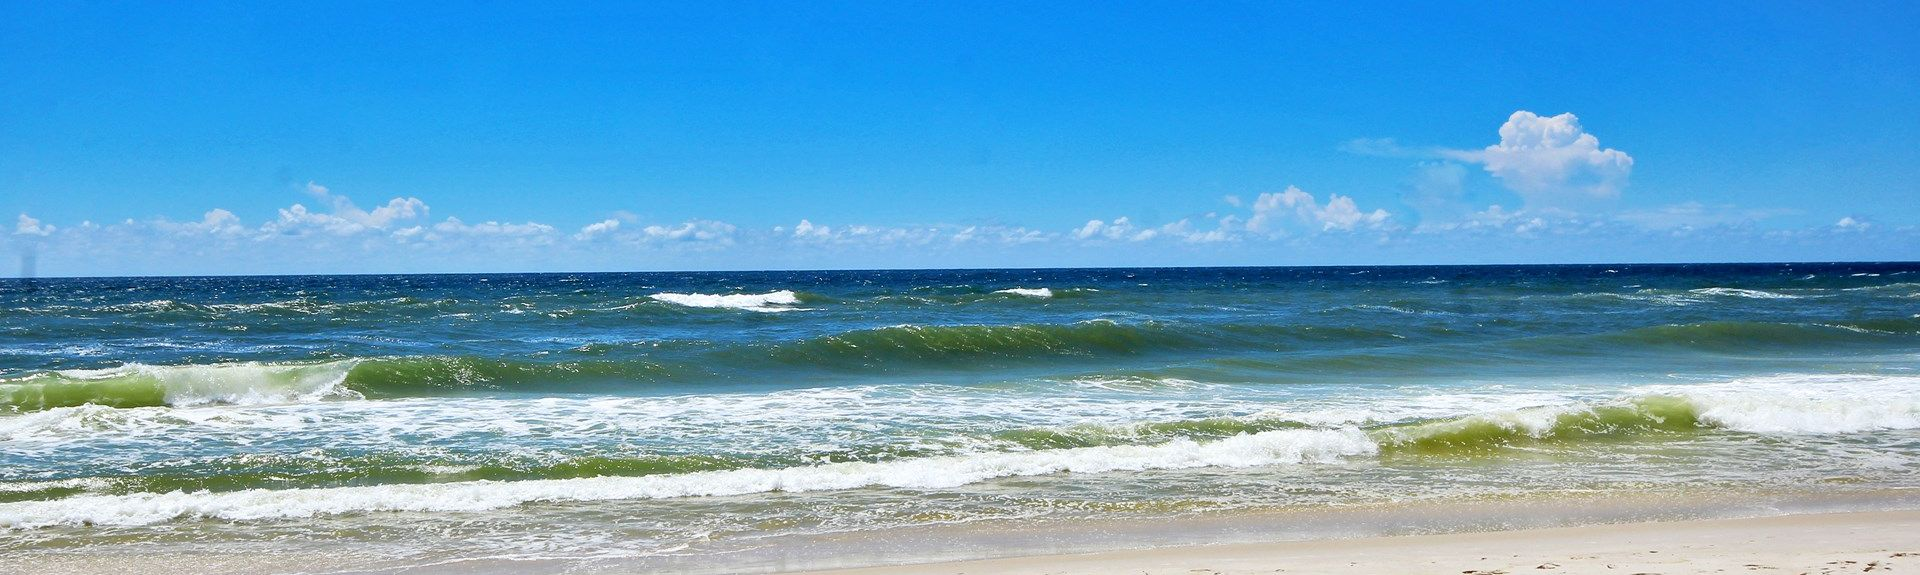 Island Shores, Gulf Shores, Alabama, United States of America